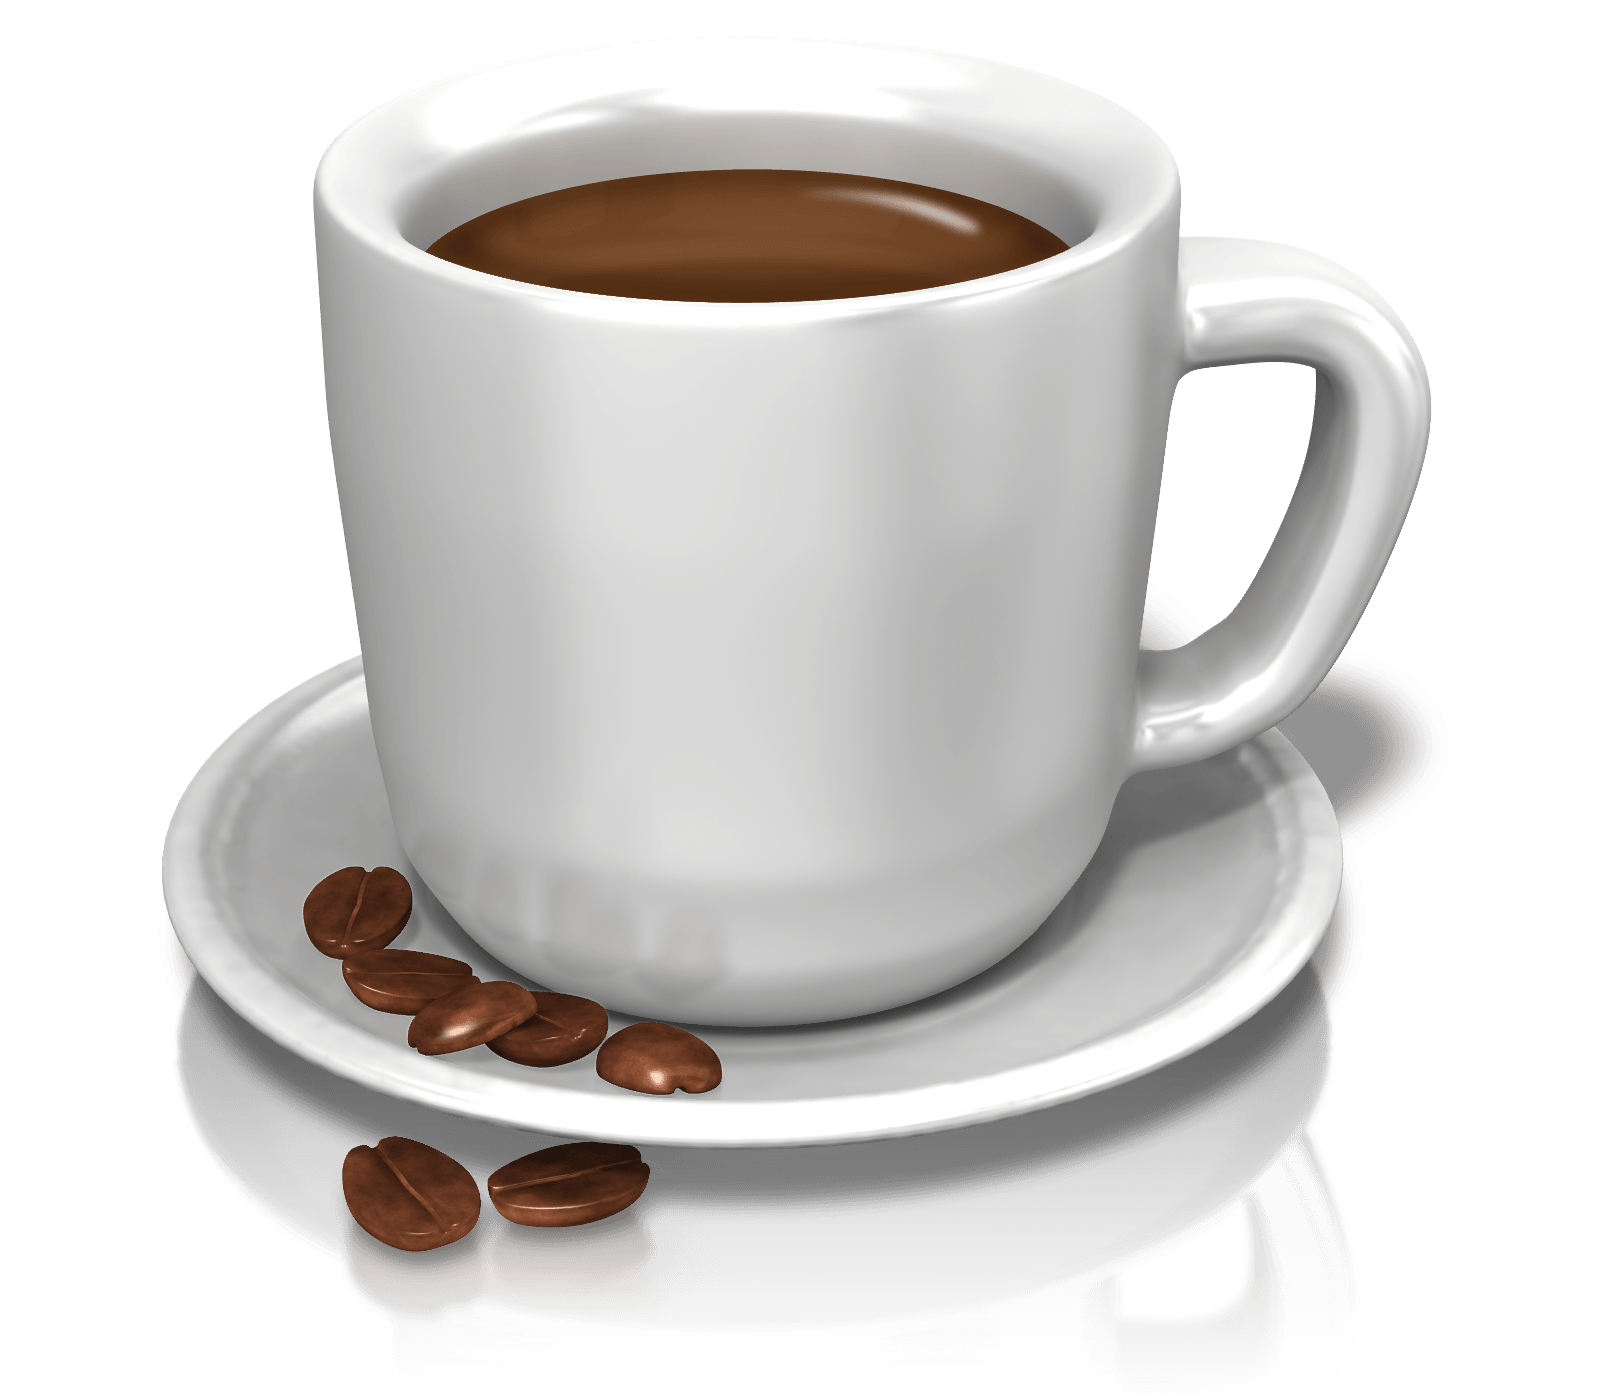 PNG Cup Of Coffee - 133139